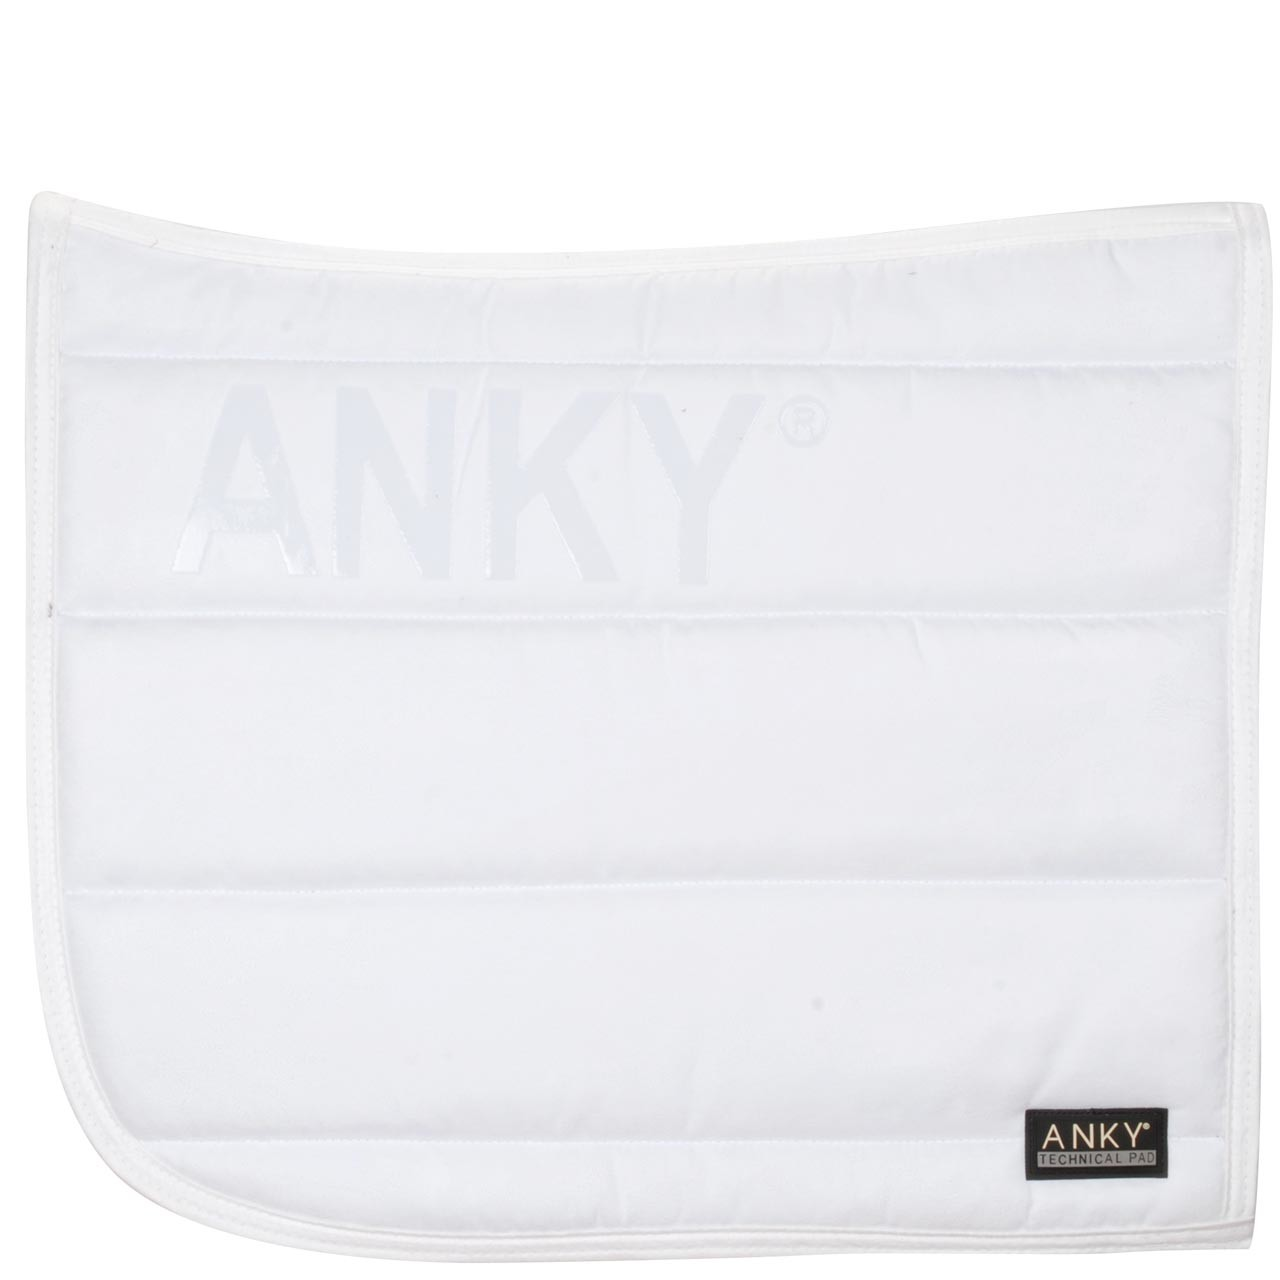 Anky Basis pad wit maat:full